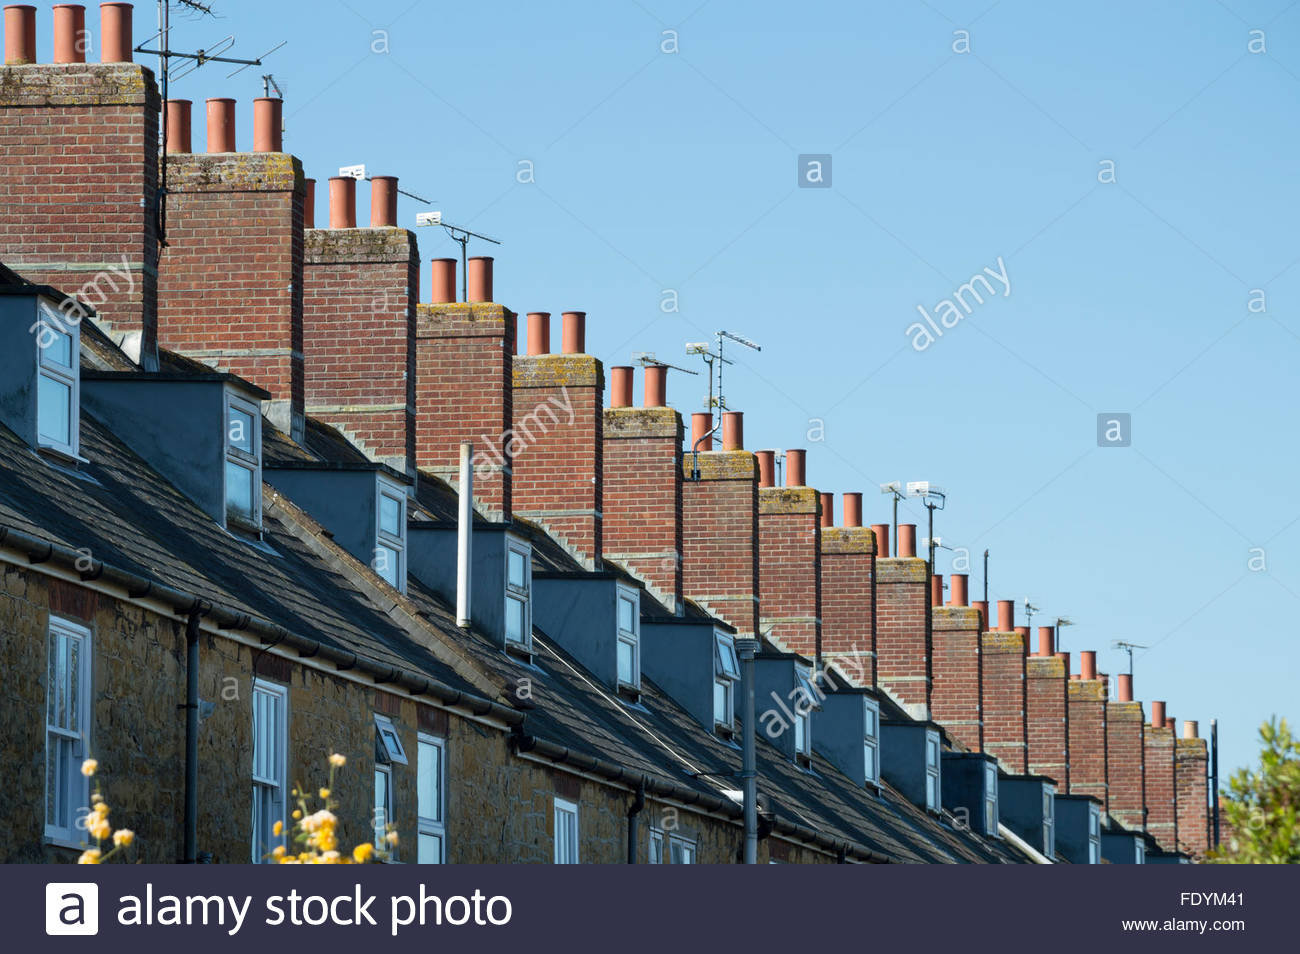 Roofs, chimneys and dormer windows of a long row of terraced houses, Sherborne, Dorset, England - Stock Image